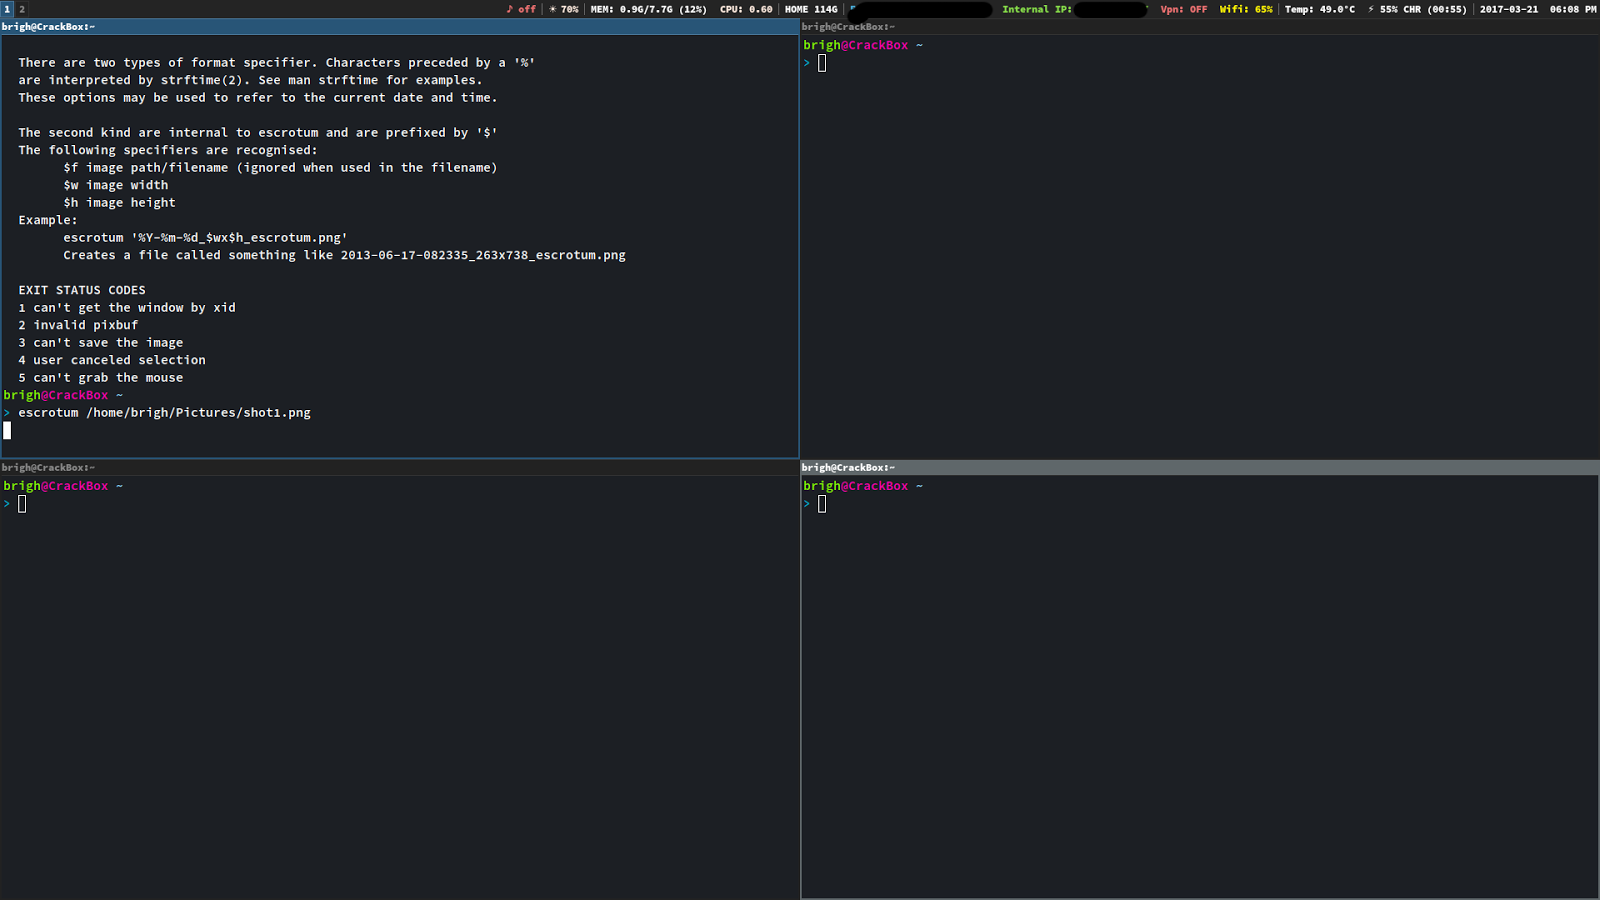 NuxView: i3WM: Populate Workspace with Terminals